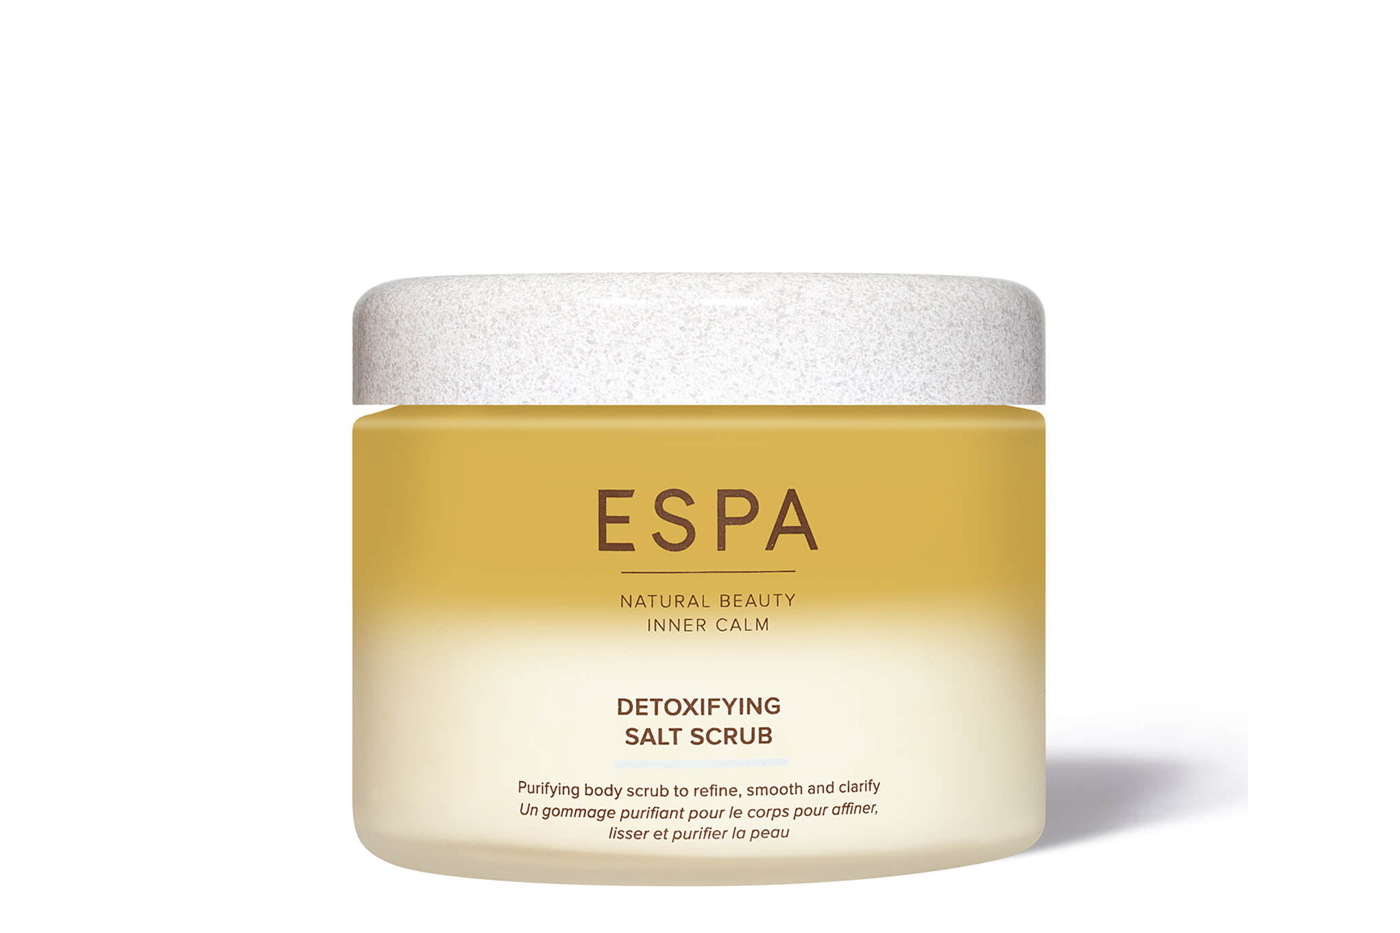 Body relaxation and healing with ESPA